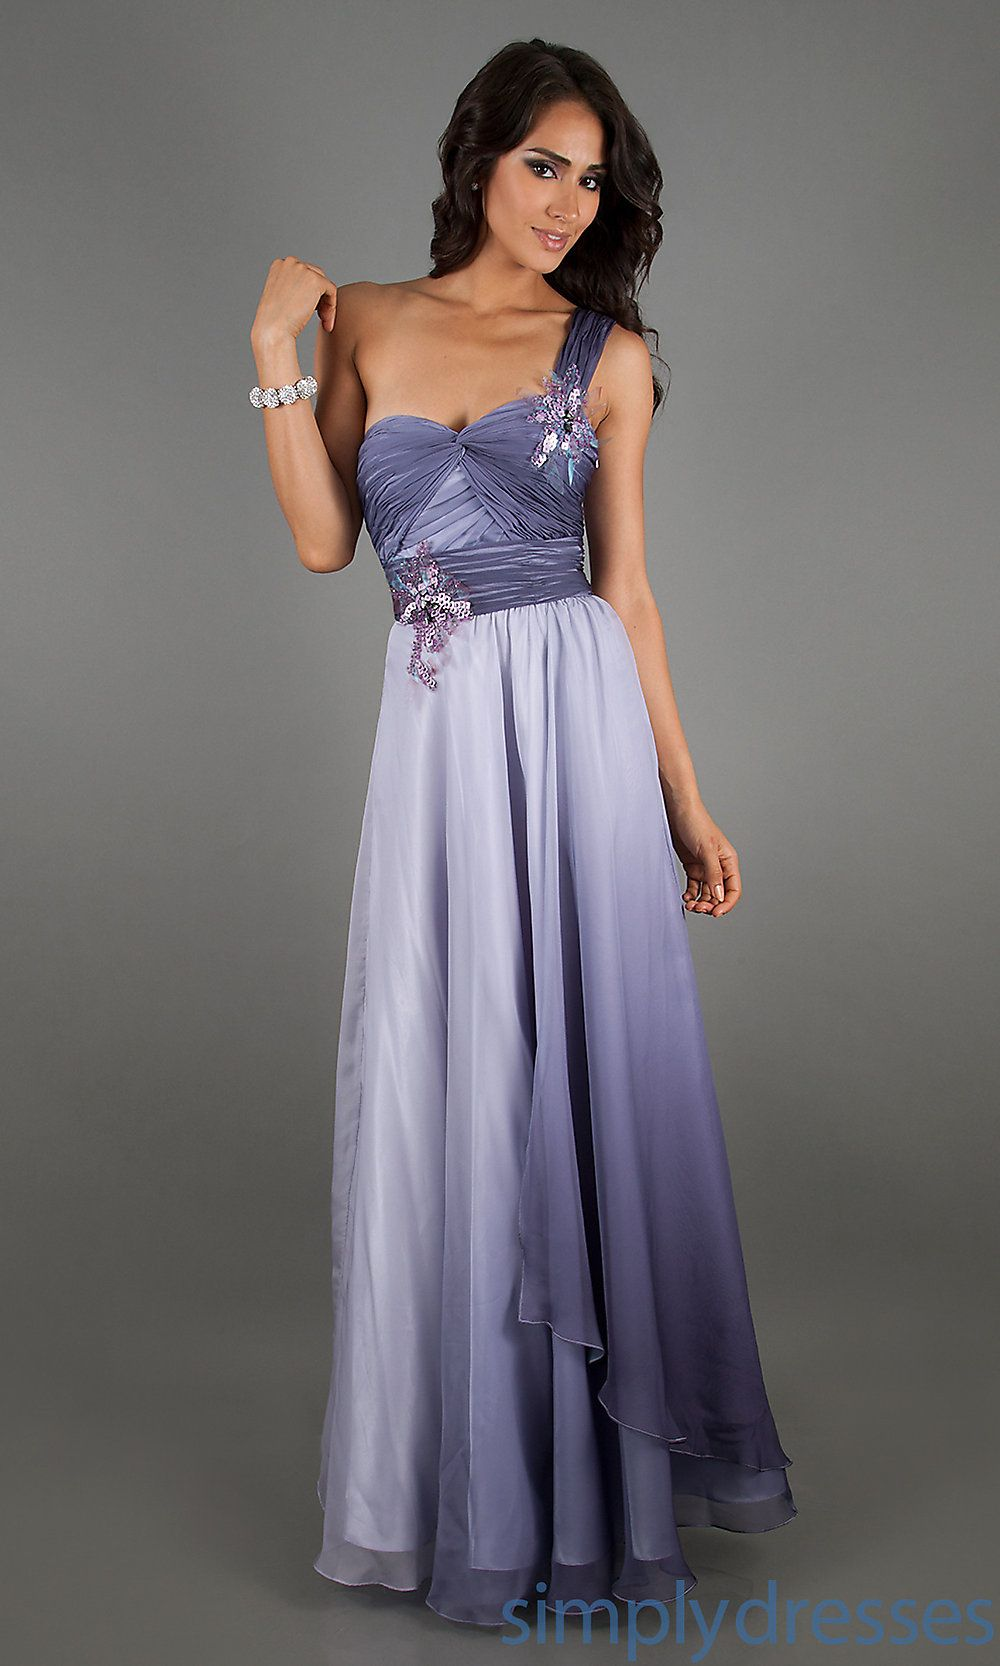 Long Prom Dress, One Shoulder Ombre Evening Gown - Simply Dresses ...